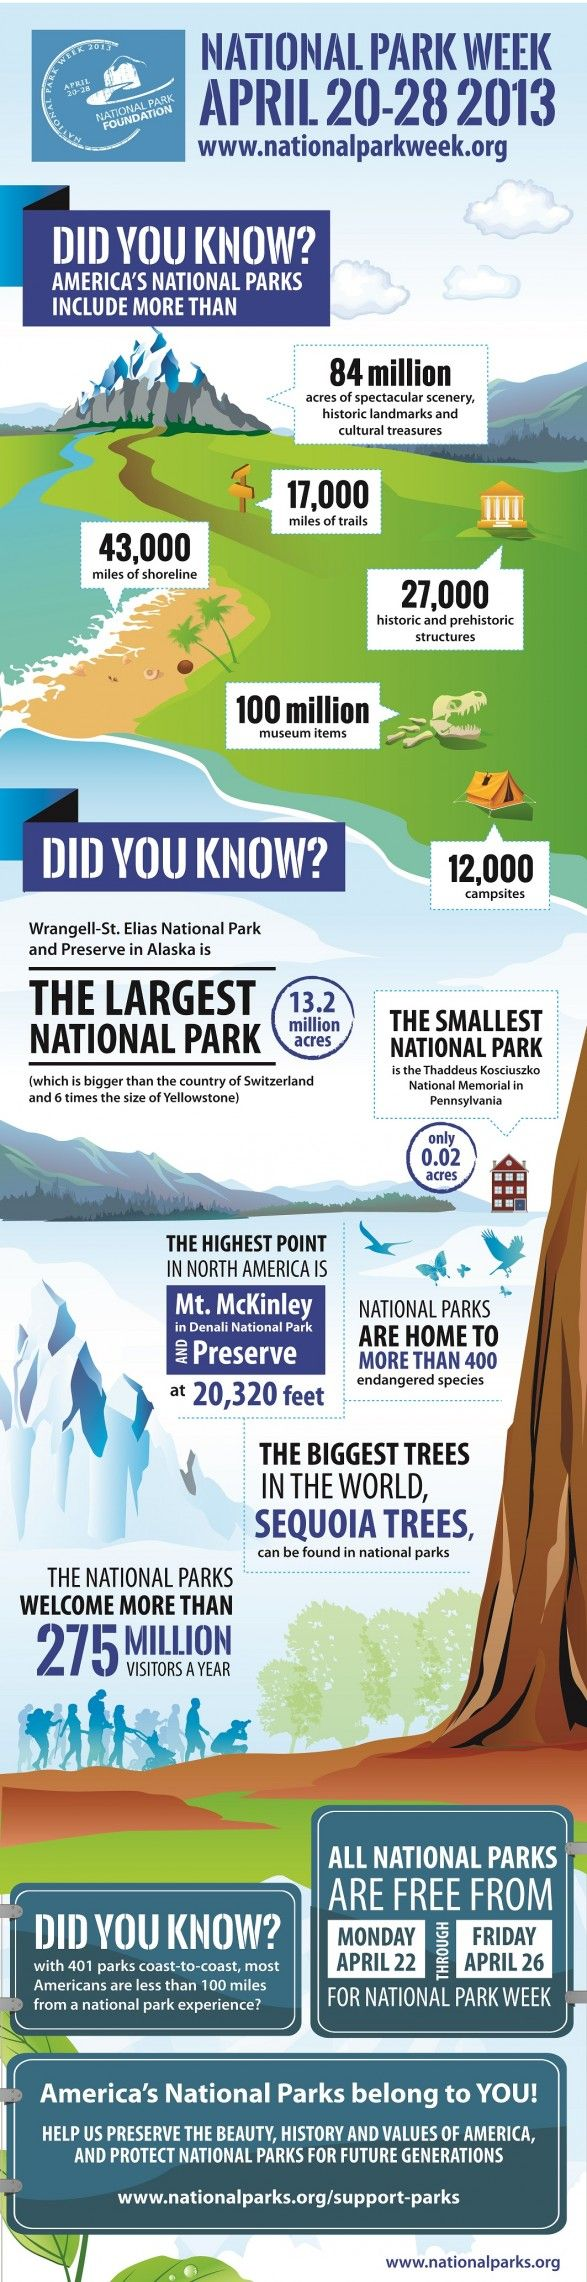 Did You Know National Park Week Is April 20-28?    http://larryferlazzo.edublogs.org/2009/03/26/the-best-sites-for-learning-about-yosemite-other-us-national-parks/